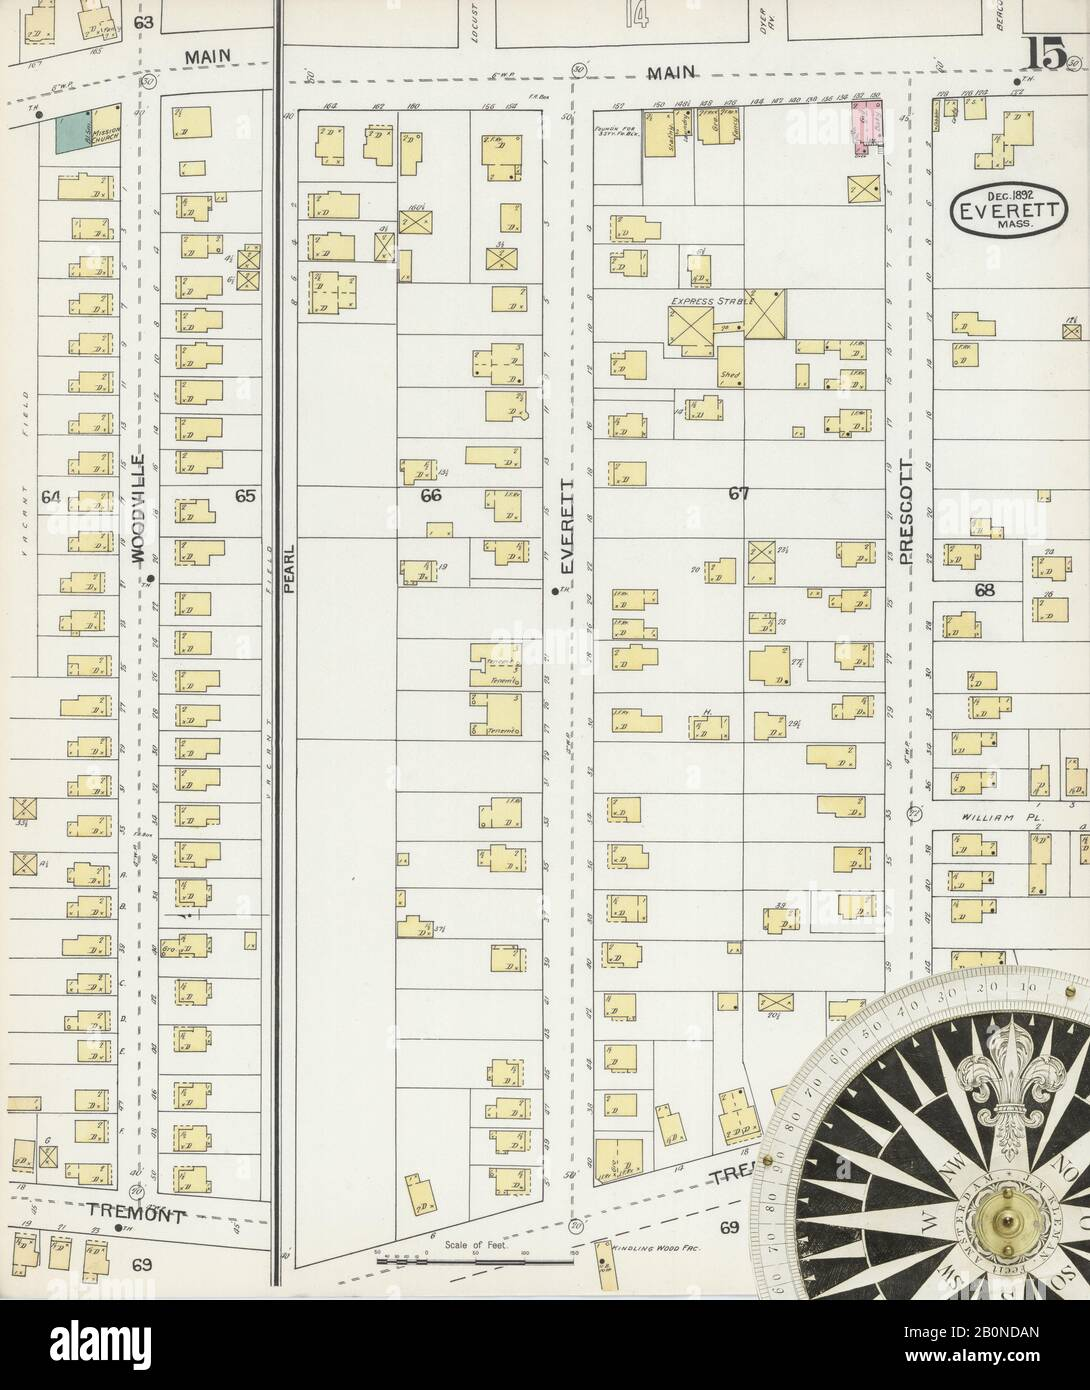 Image 15 of Sanborn Fire Insurance Map from Everett, Middlesex County, Massachusetts. Dec 1892. 16 Sheet(s), America, street map with a Nineteenth Century compass Stock Photo